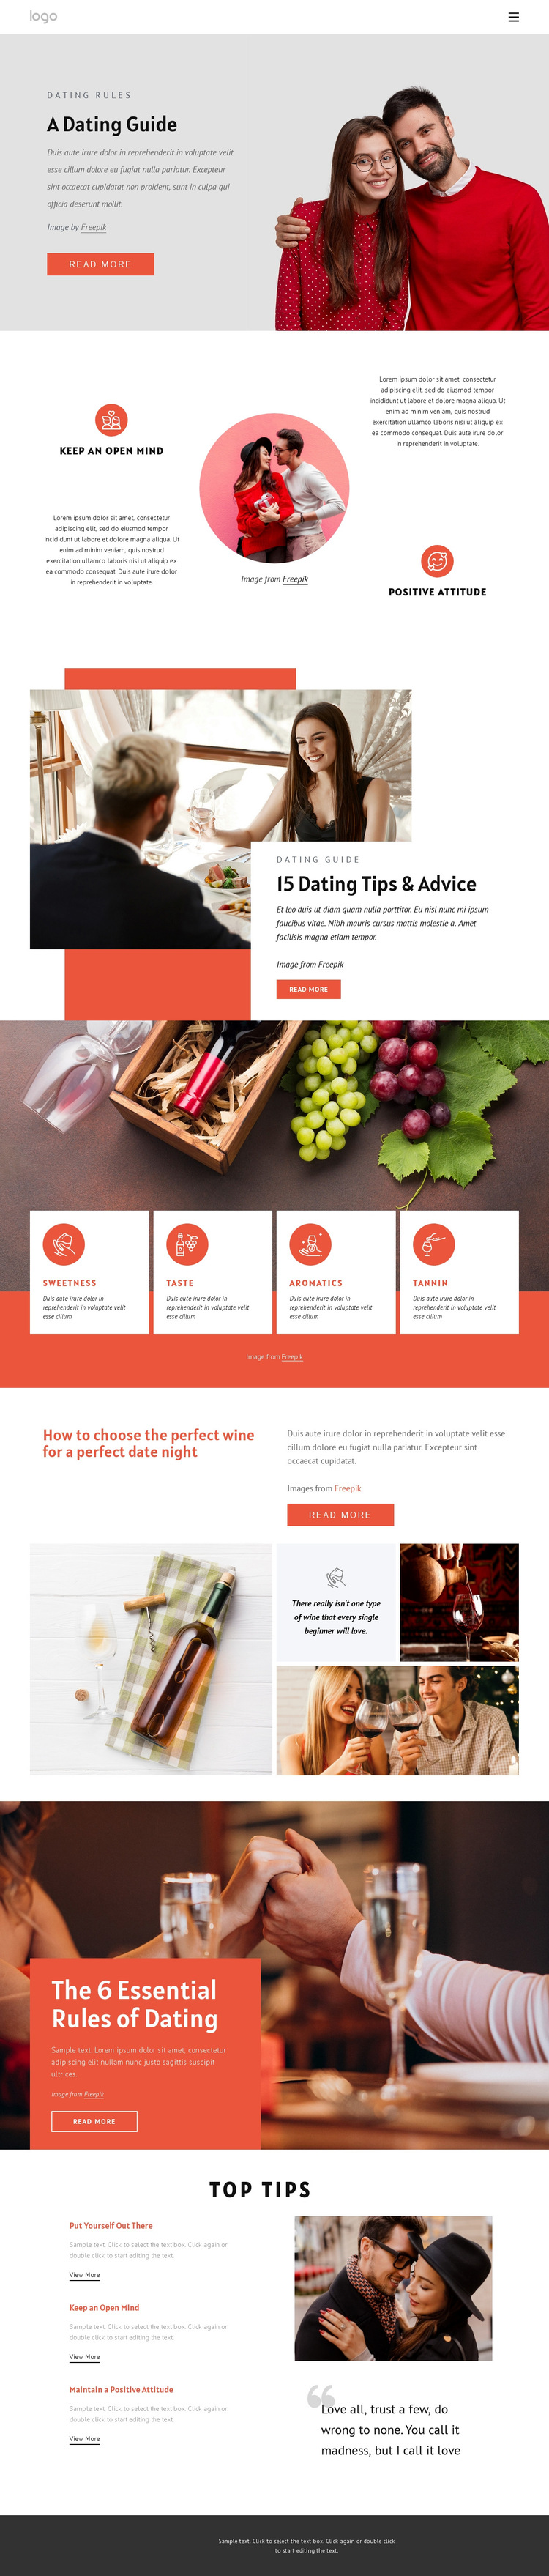 Dating guide HTML5 Template